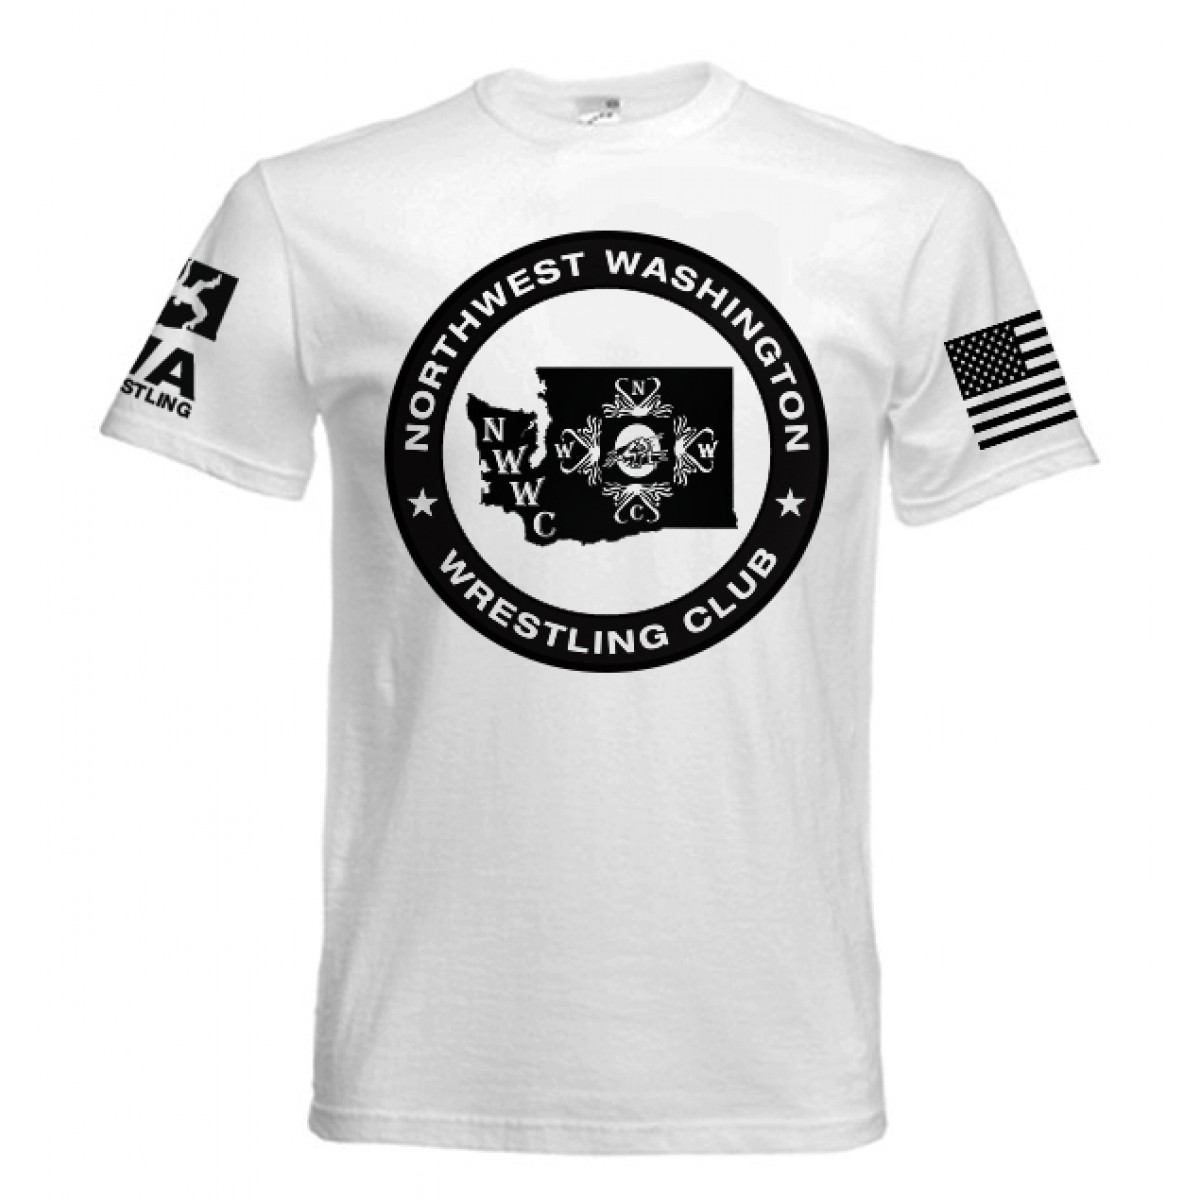 NWWC White T-shirt Black Logo-White-YM